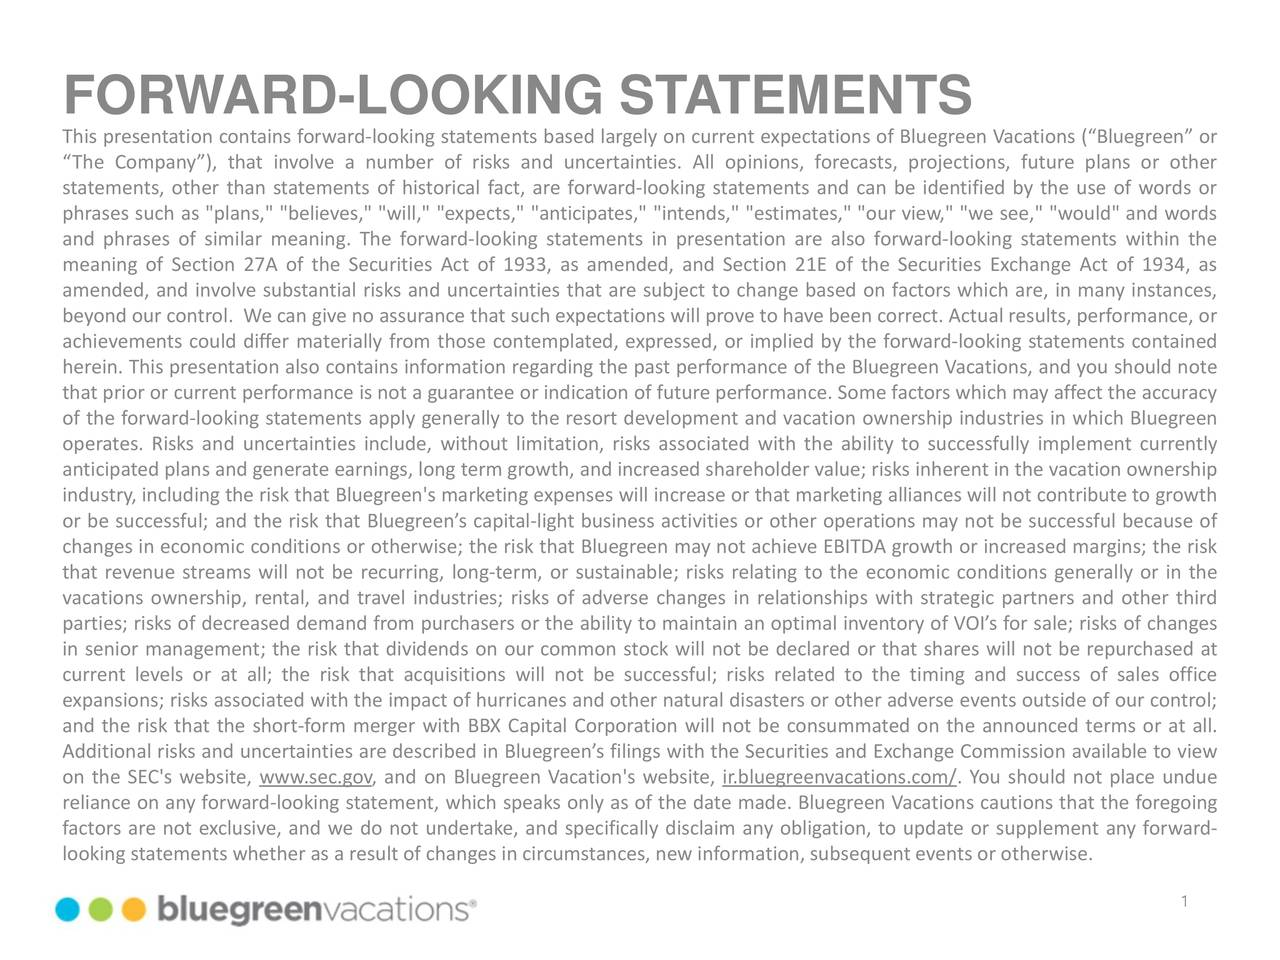 """This presentation contains forward-looking statements based largely on current expectations of Bluegreen Vacations (""""Bluegreen"""" or """"The Company""""), that involve a number of risks and uncertainties. All opinions, forecasts, projections, future plans or other statements, other than statements of historical fact, are forward-looking statements and can be identified by the use of words or phrases such as """"plans,"""" """"believes,"""" """"will,"""" """"expects,"""" """"anticipates,"""" """"intends,"""" """"estimates,"""" """"our view,"""" """"we see,"""" """"would"""" and words and phrases of similar meaning. The forward-looking statements in presentation are also forward-looking statements within the meaning of Section 27A of the Securities Act of 1933, as amended, and Section 21E of the Securities Exchange Act of 1934, as amended, and involve substantial risks and uncertainties that are subject to change based on factors which are, in many instances, beyond our control. We can give no assurance that such expectations will prove to have been correct. Actual results, performance, or achievements could differ materially from those contemplated, expressed, or implied by the forward-looking statements contained herein. This presentation also contains information regarding the past performance of the Bluegreen Vacations, and you should note that prior or current performance is not a guarantee or indication of future performance. Some factors which may affect the accuracy of the forward-looking statements apply generally to the resort development and vacation ownership industries in which Bluegreen operates. Risks and uncertainties include, without limitation, risks associated with the ability to successfully implement currently anticipated plans and generate earnings, long term growth, and increased shareholder value; risks inherent in the vacation ownership industry, including the risk that Bluegreen's marketing expenses will increase or that marketing alliances will not contribute to growth or be successful; and the risk that Blu"""